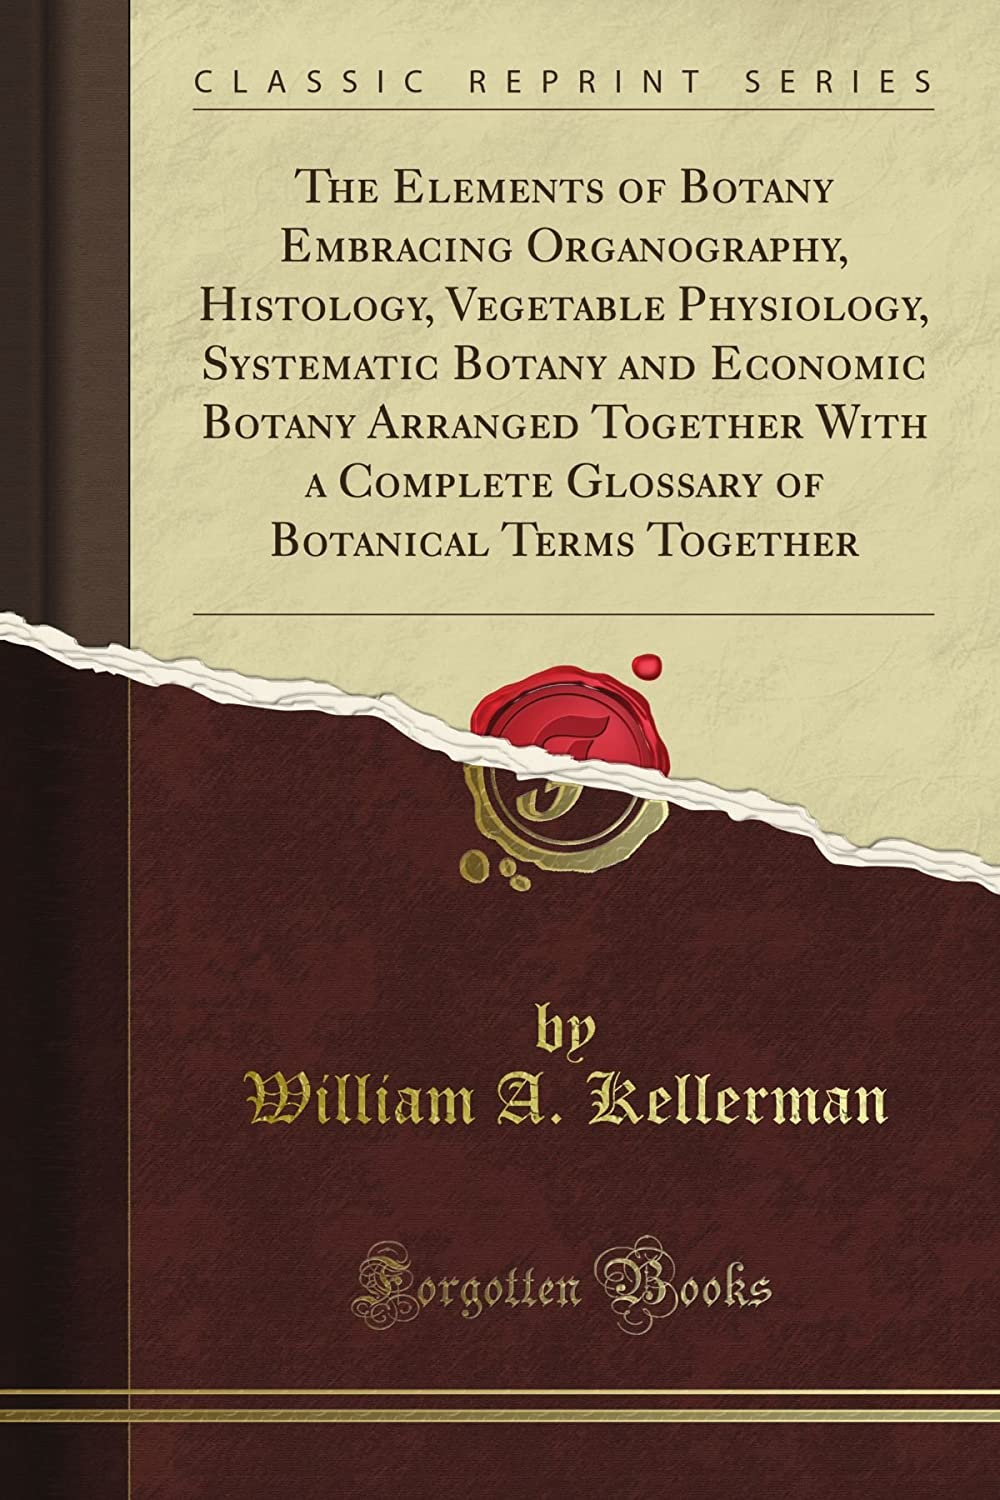 The Elements of Botany Embracing Organography, Histology, Vegetable Physiology, Systematic Botany and Economic Botany Arranged Together With a Complete Glossary of Botanical Terms Together (Classic Reprint)